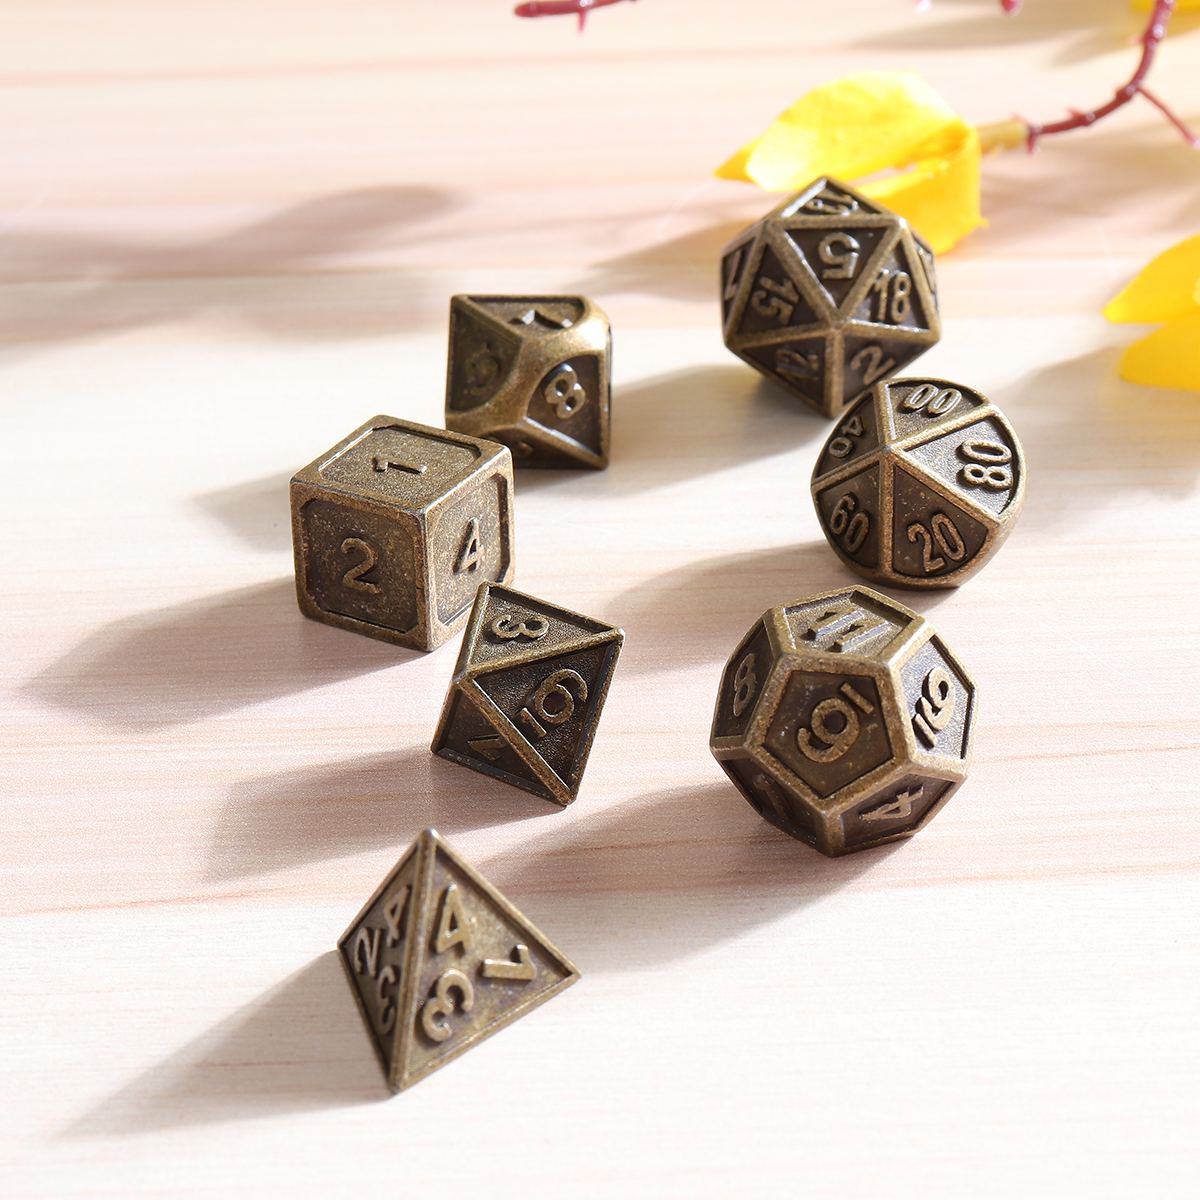 7pcs Embossed Heavy Metal Polyhedral Dices RPG Multisided Dices Set With Bag